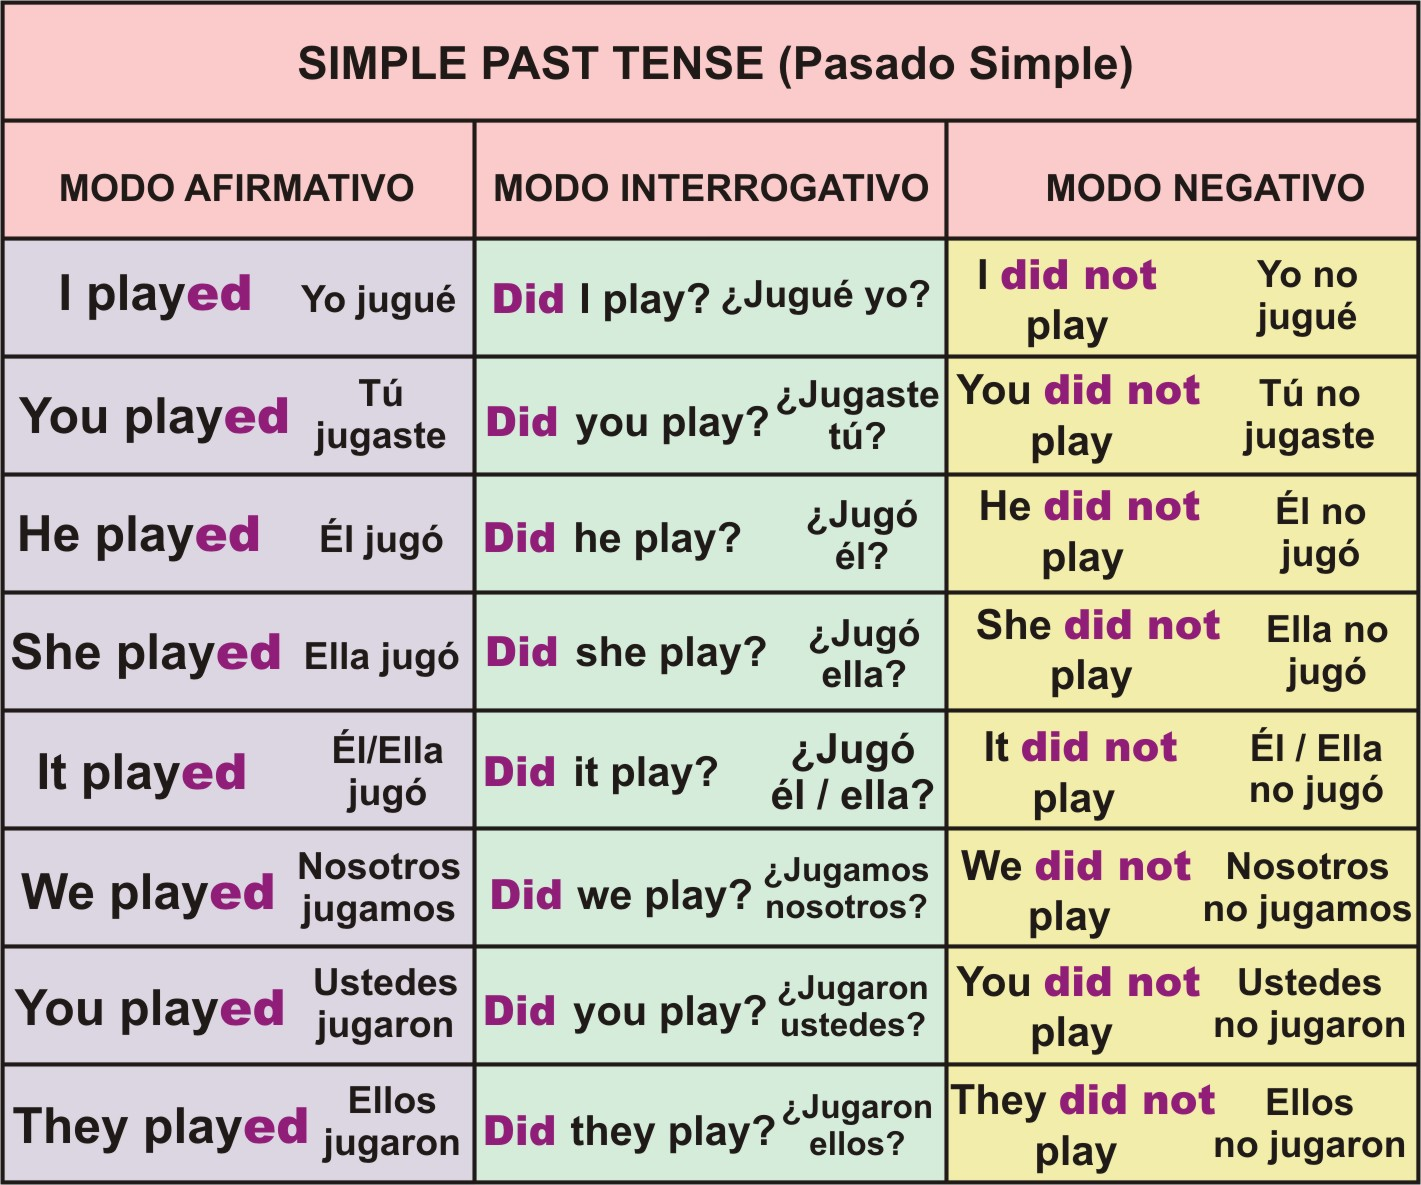 beat past tense dictionary